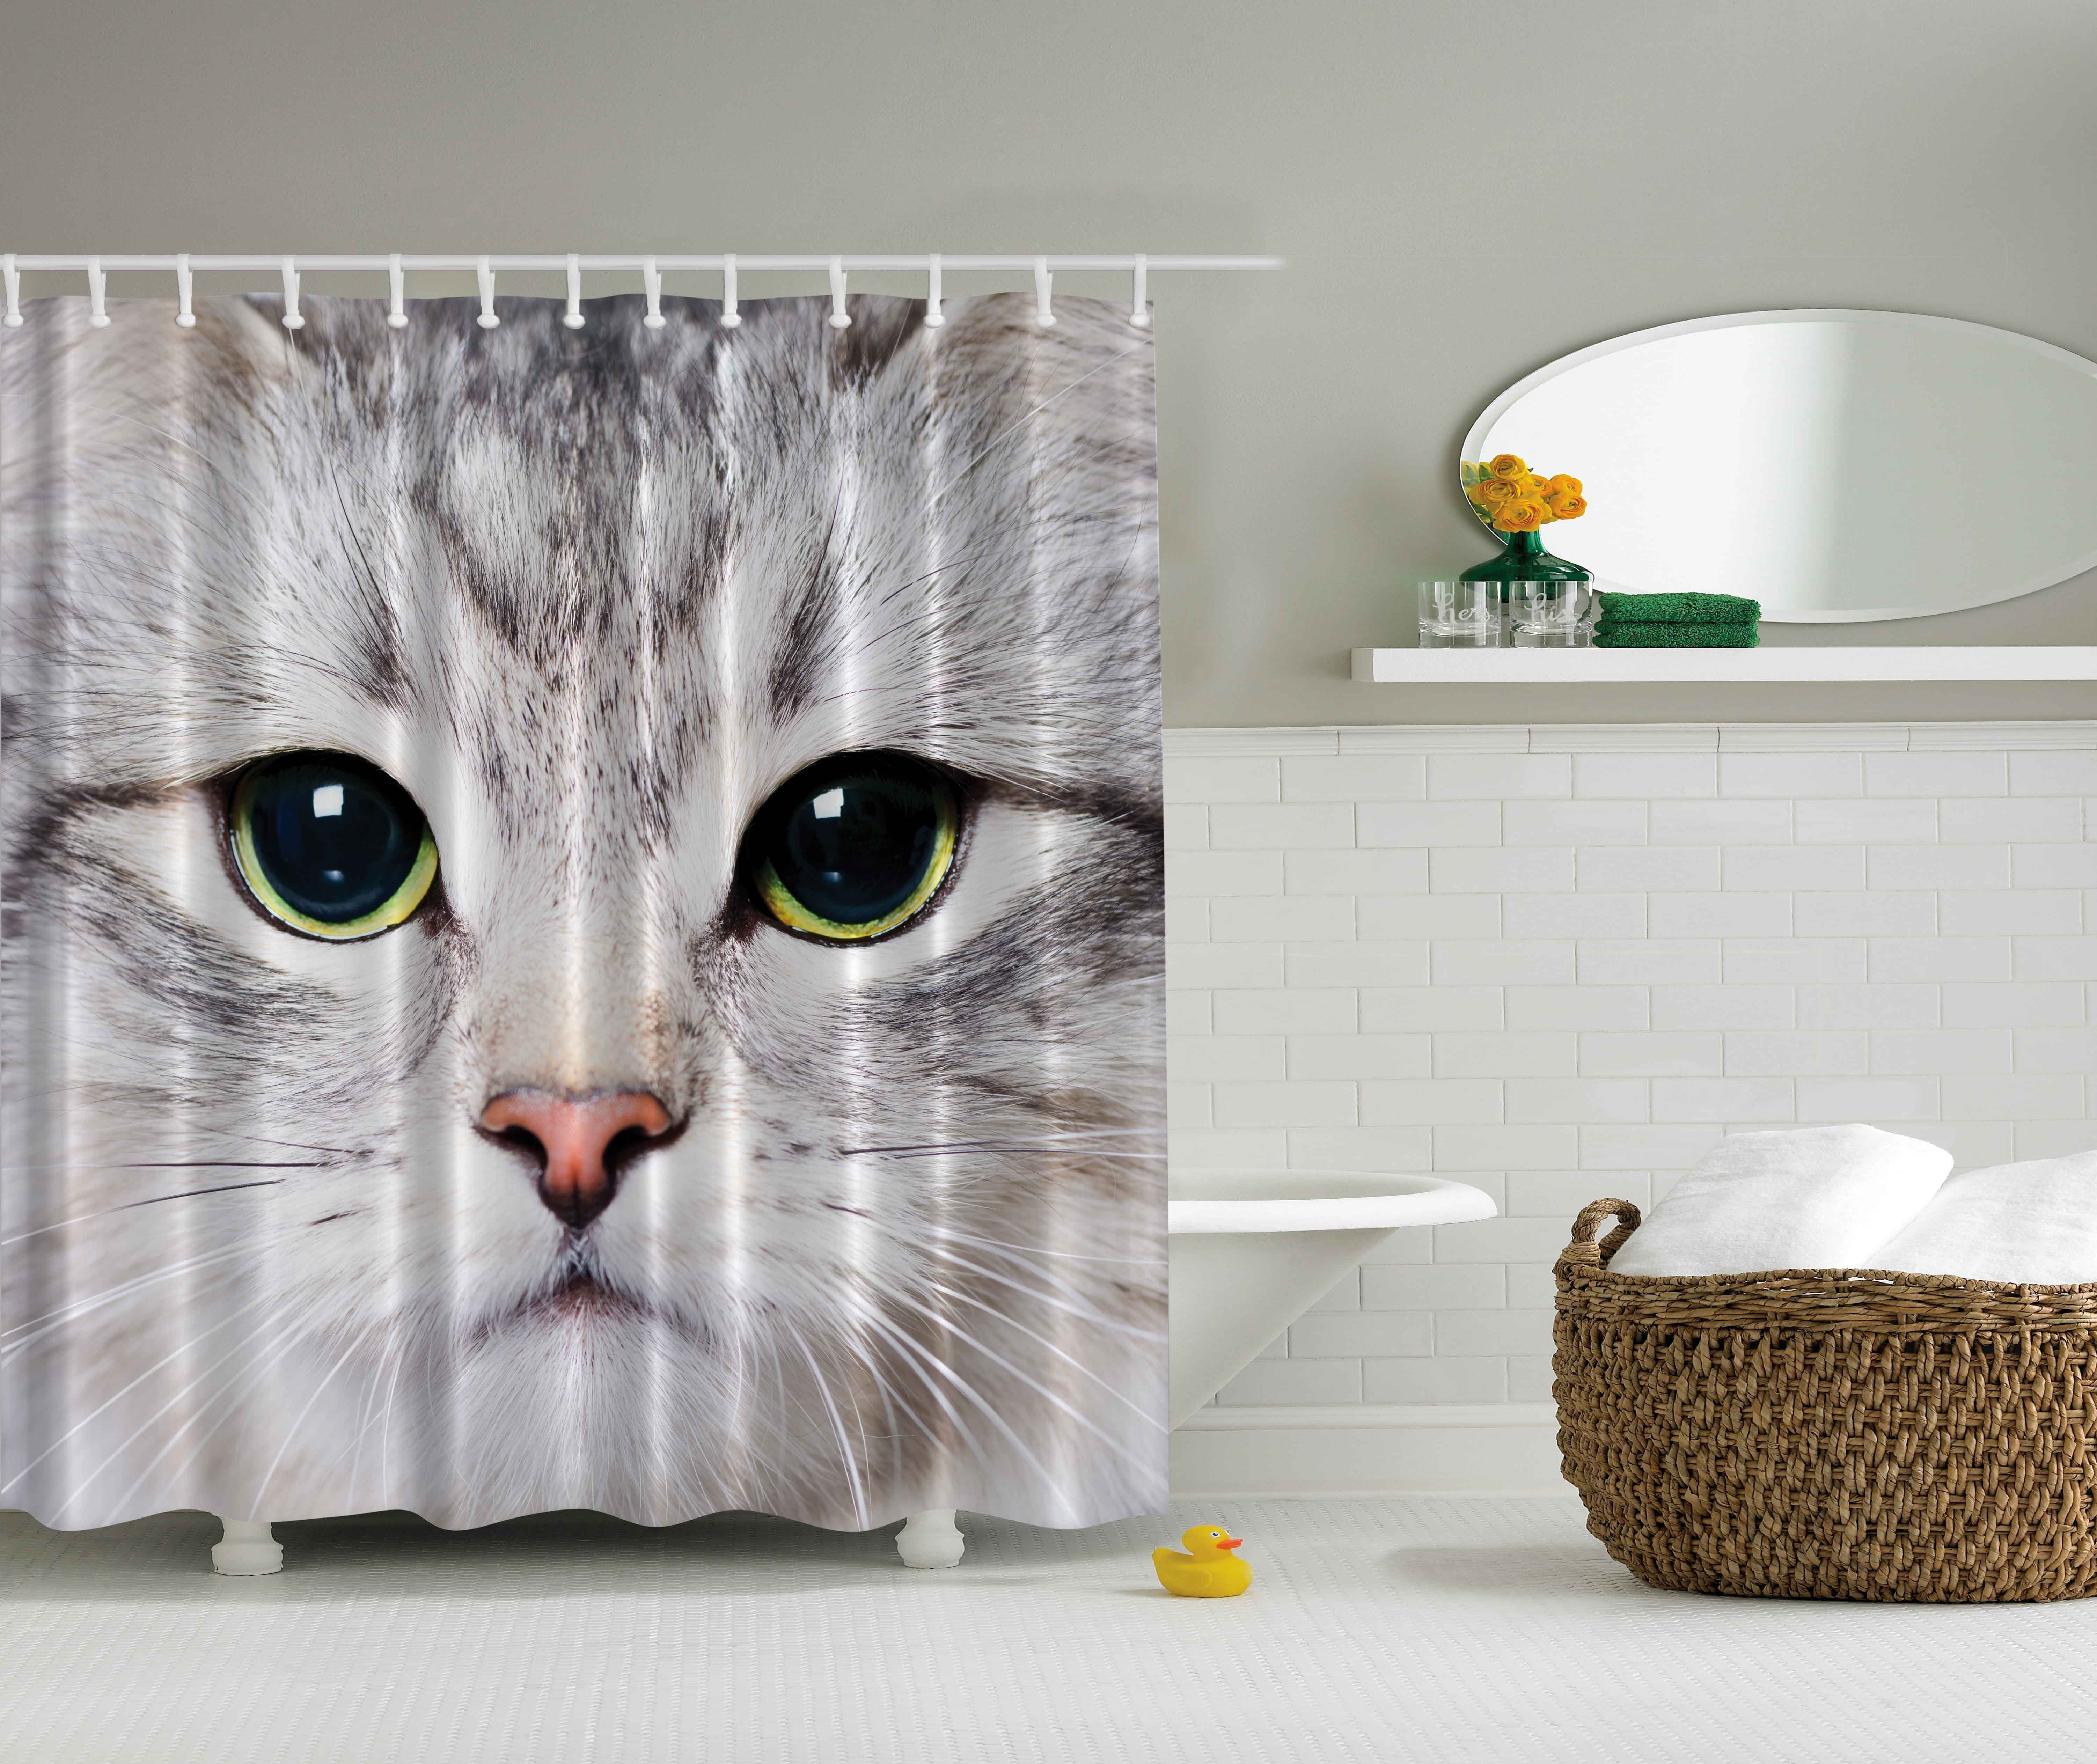 Cloud Window Curtains 3d Printing Nautical Home Decor: Animal Decor Cute Kitty Cat Close-up Portrait Picture